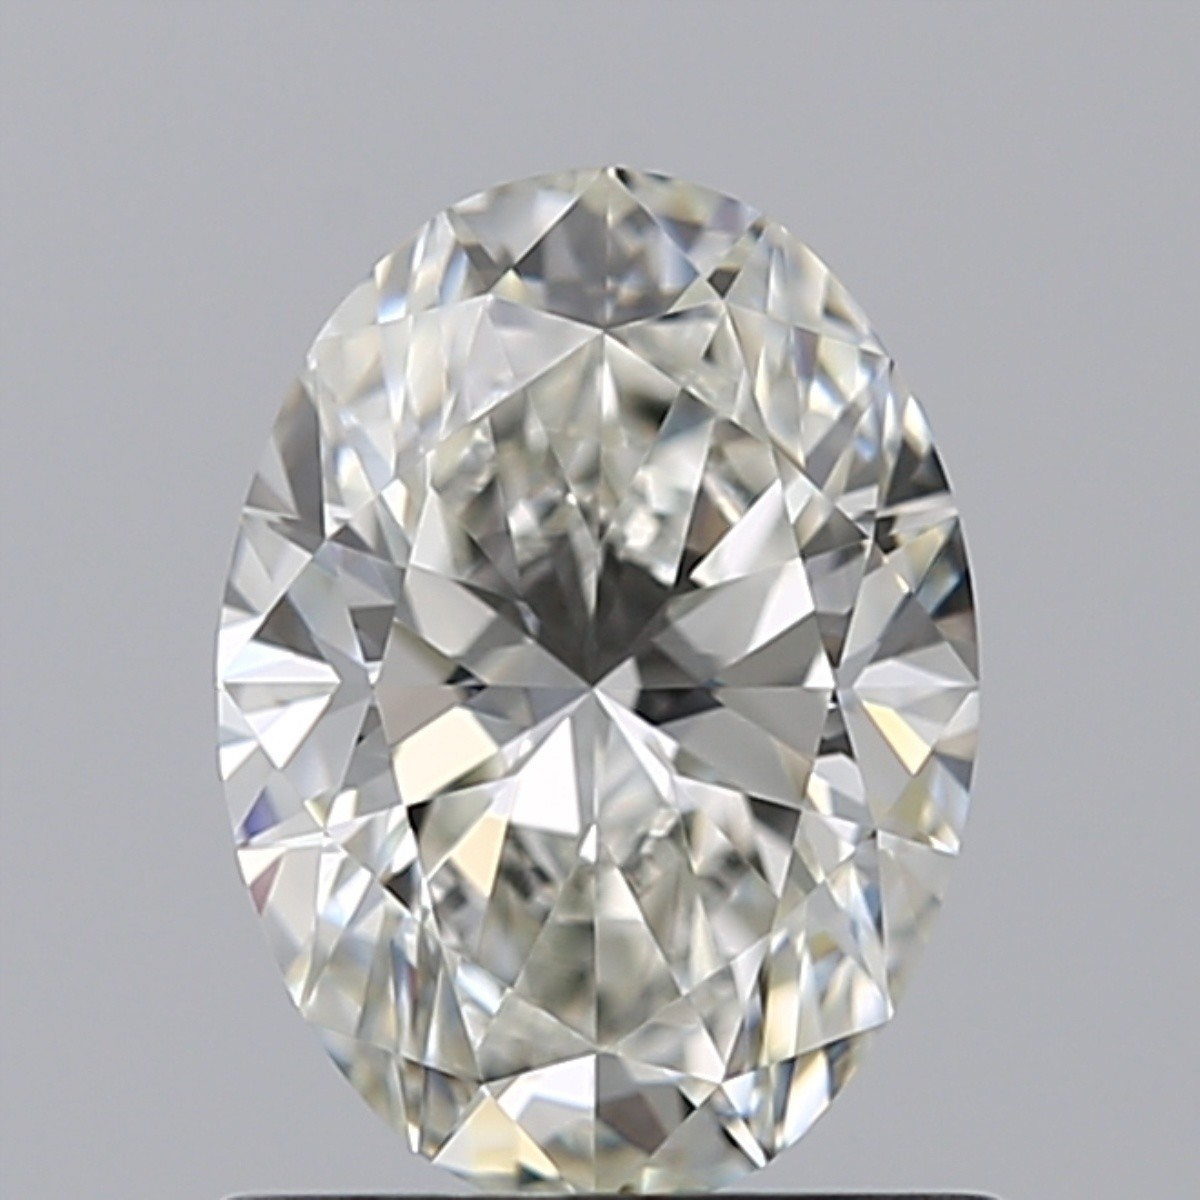 0.93 Carat Oval Diamond (I/VVS1)